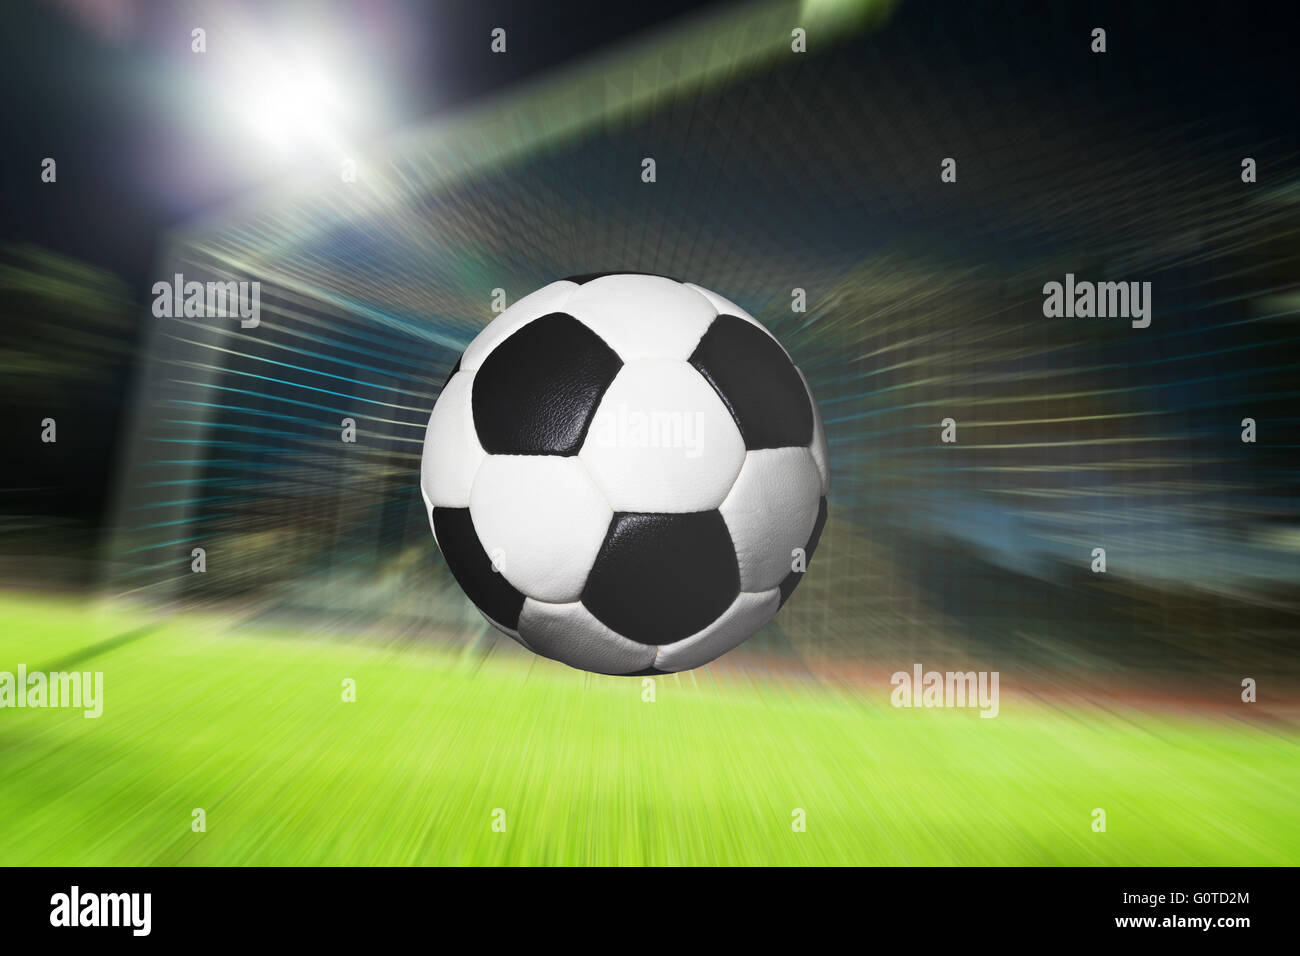 Football flying into goal - Stock Image